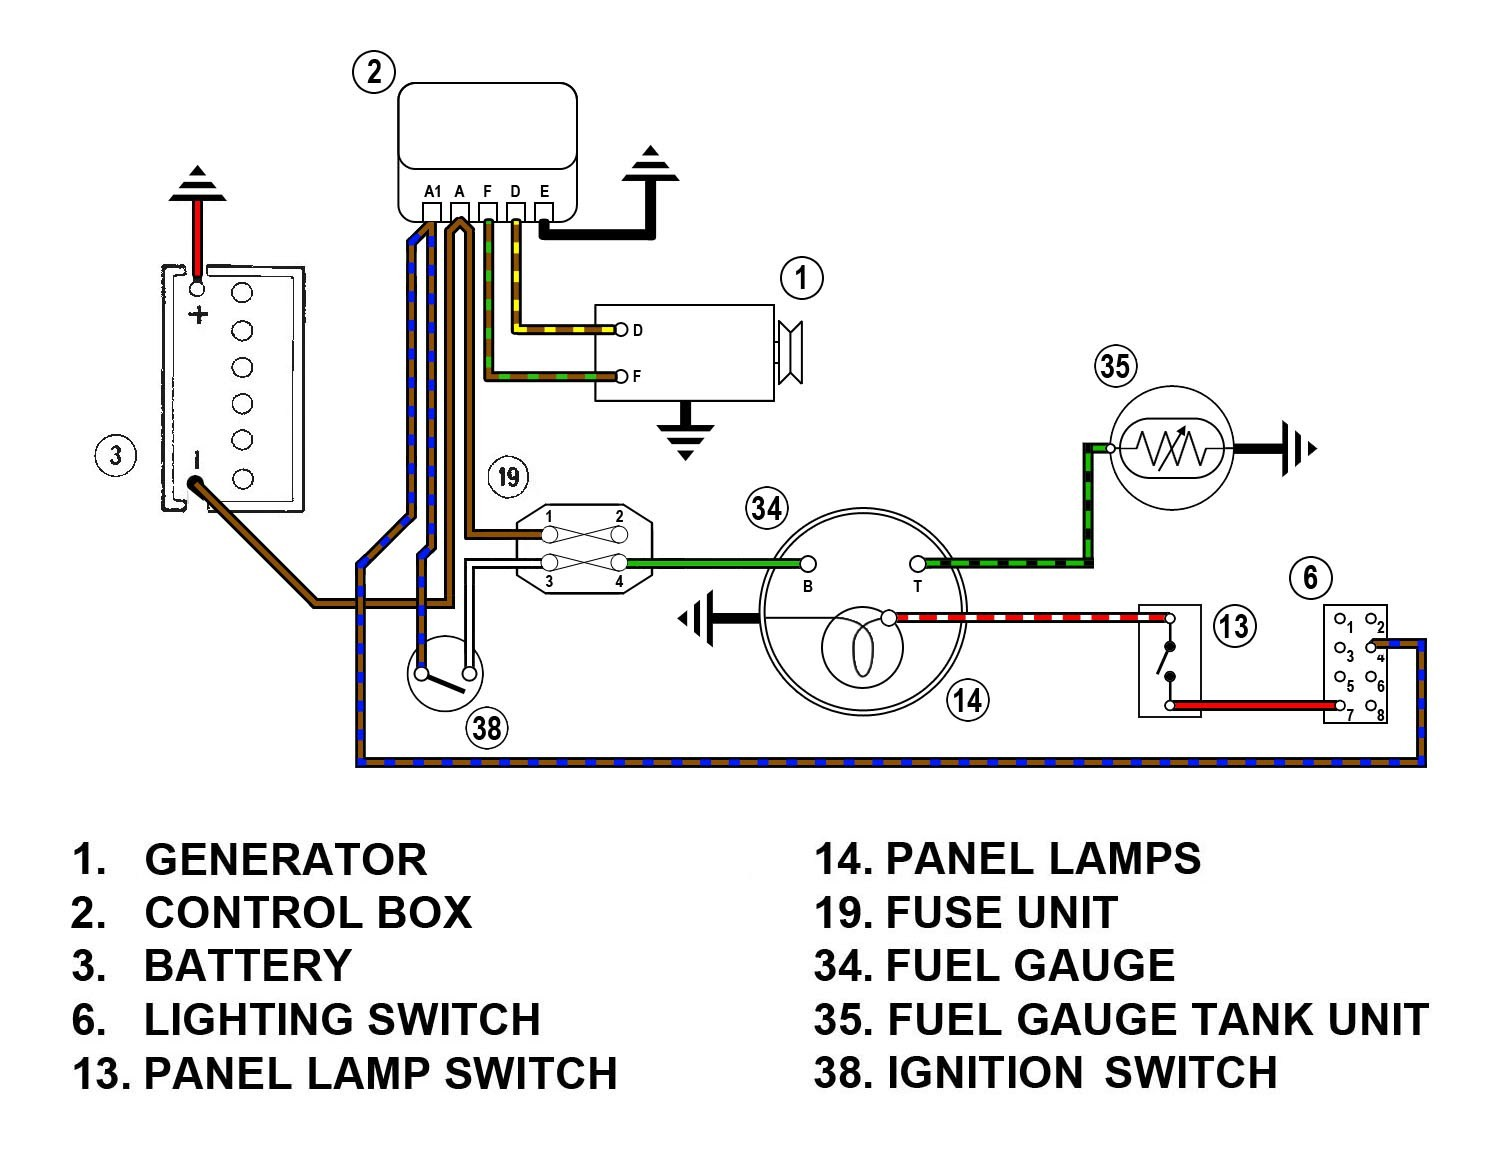 1972 Chevy Fuel Gauge Wiring Wiring Diagram Overview A Overview A Musikami It